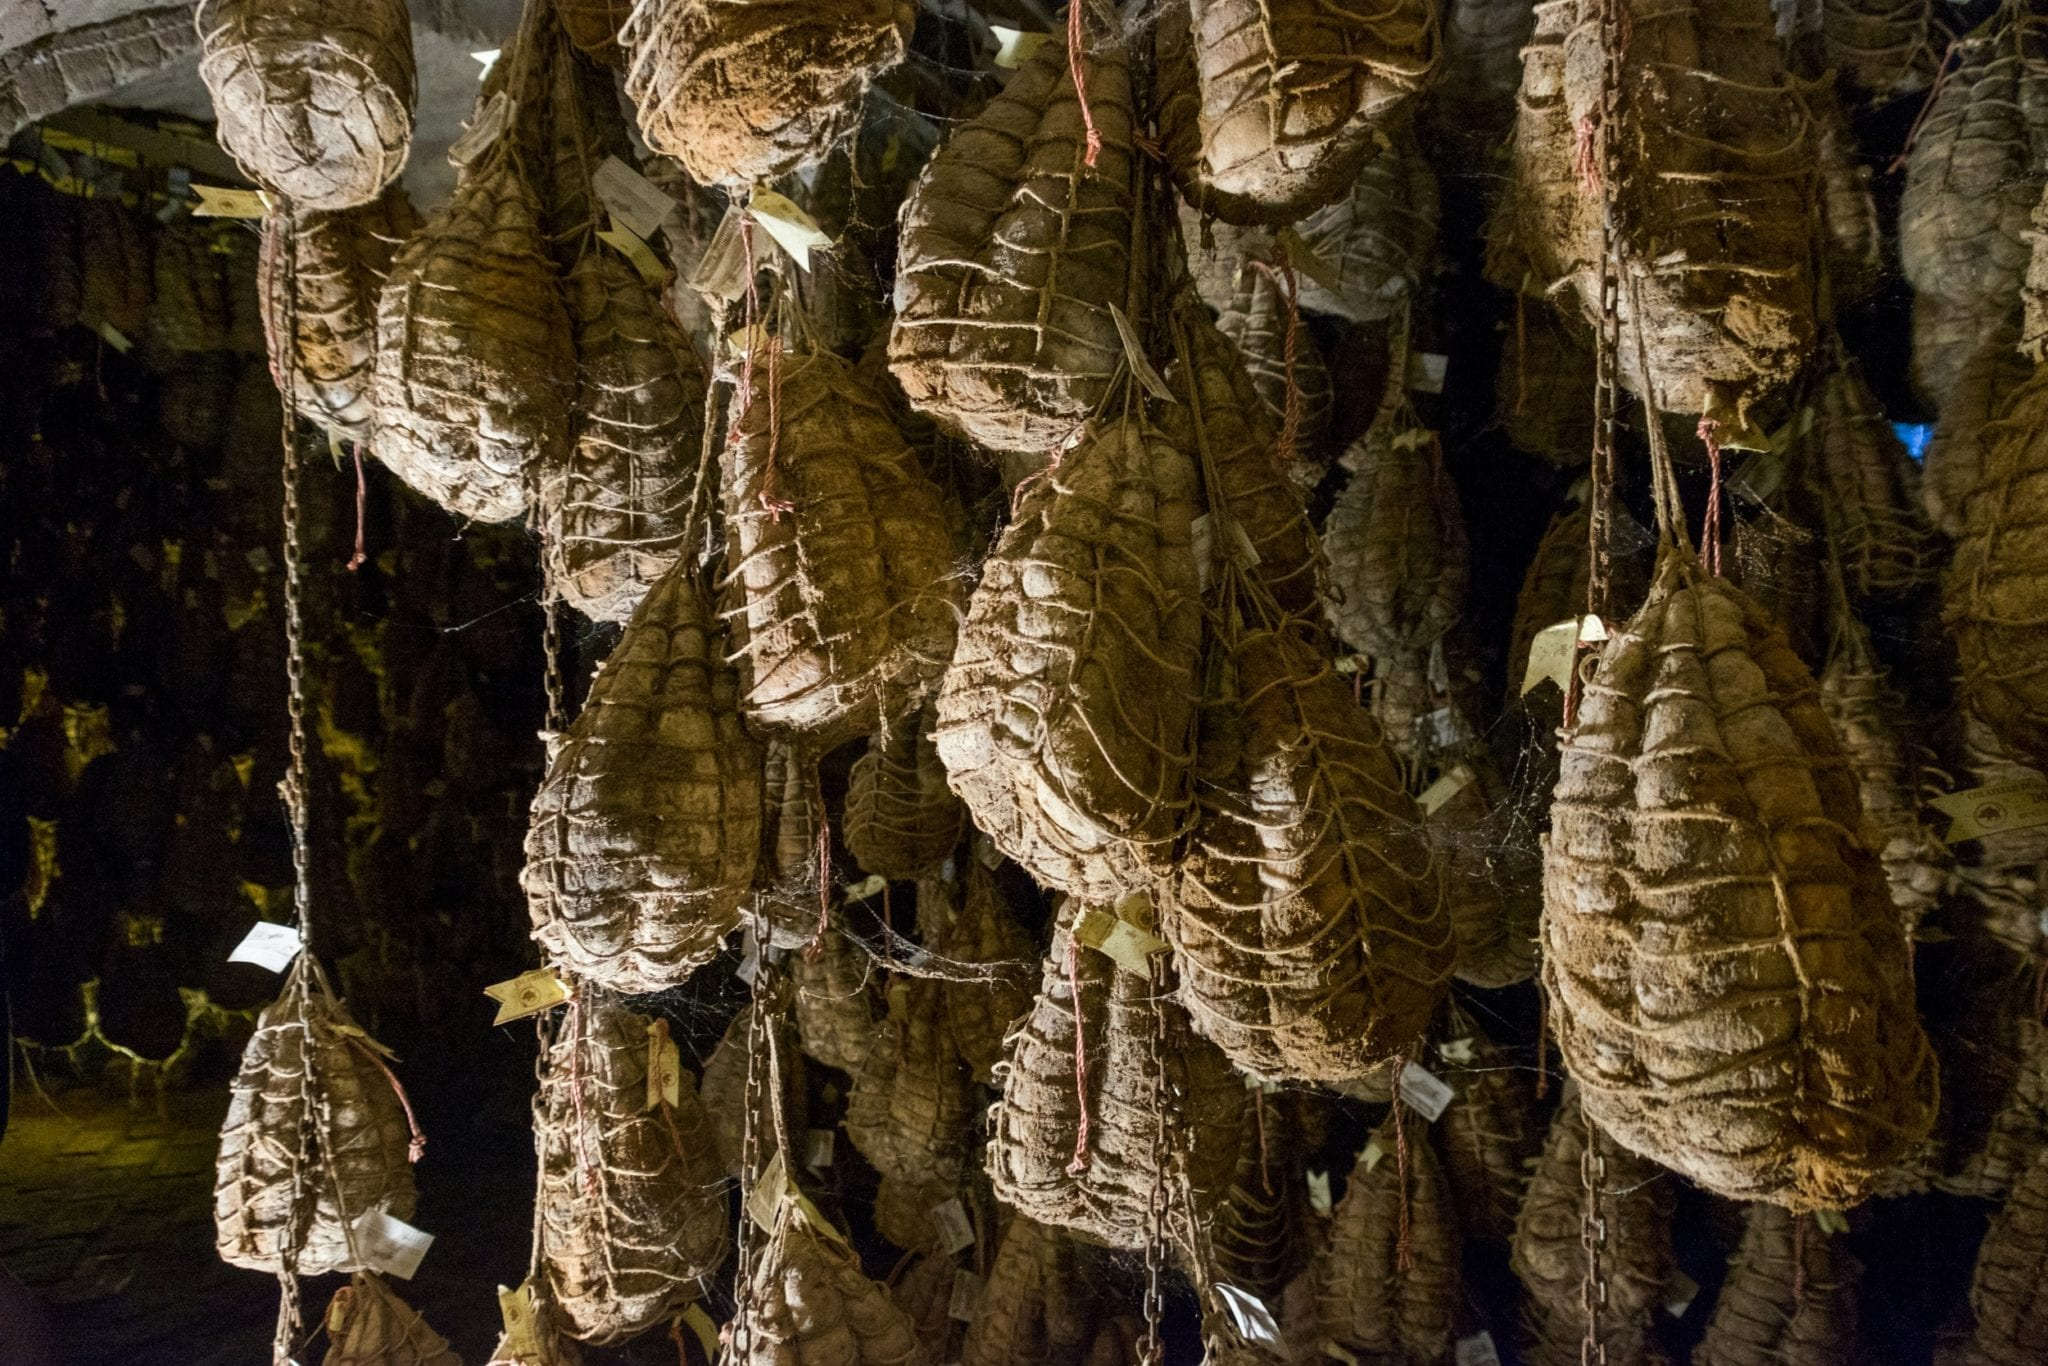 Culatello hams in a cellar, hanging from chains and connected with cobwebs.